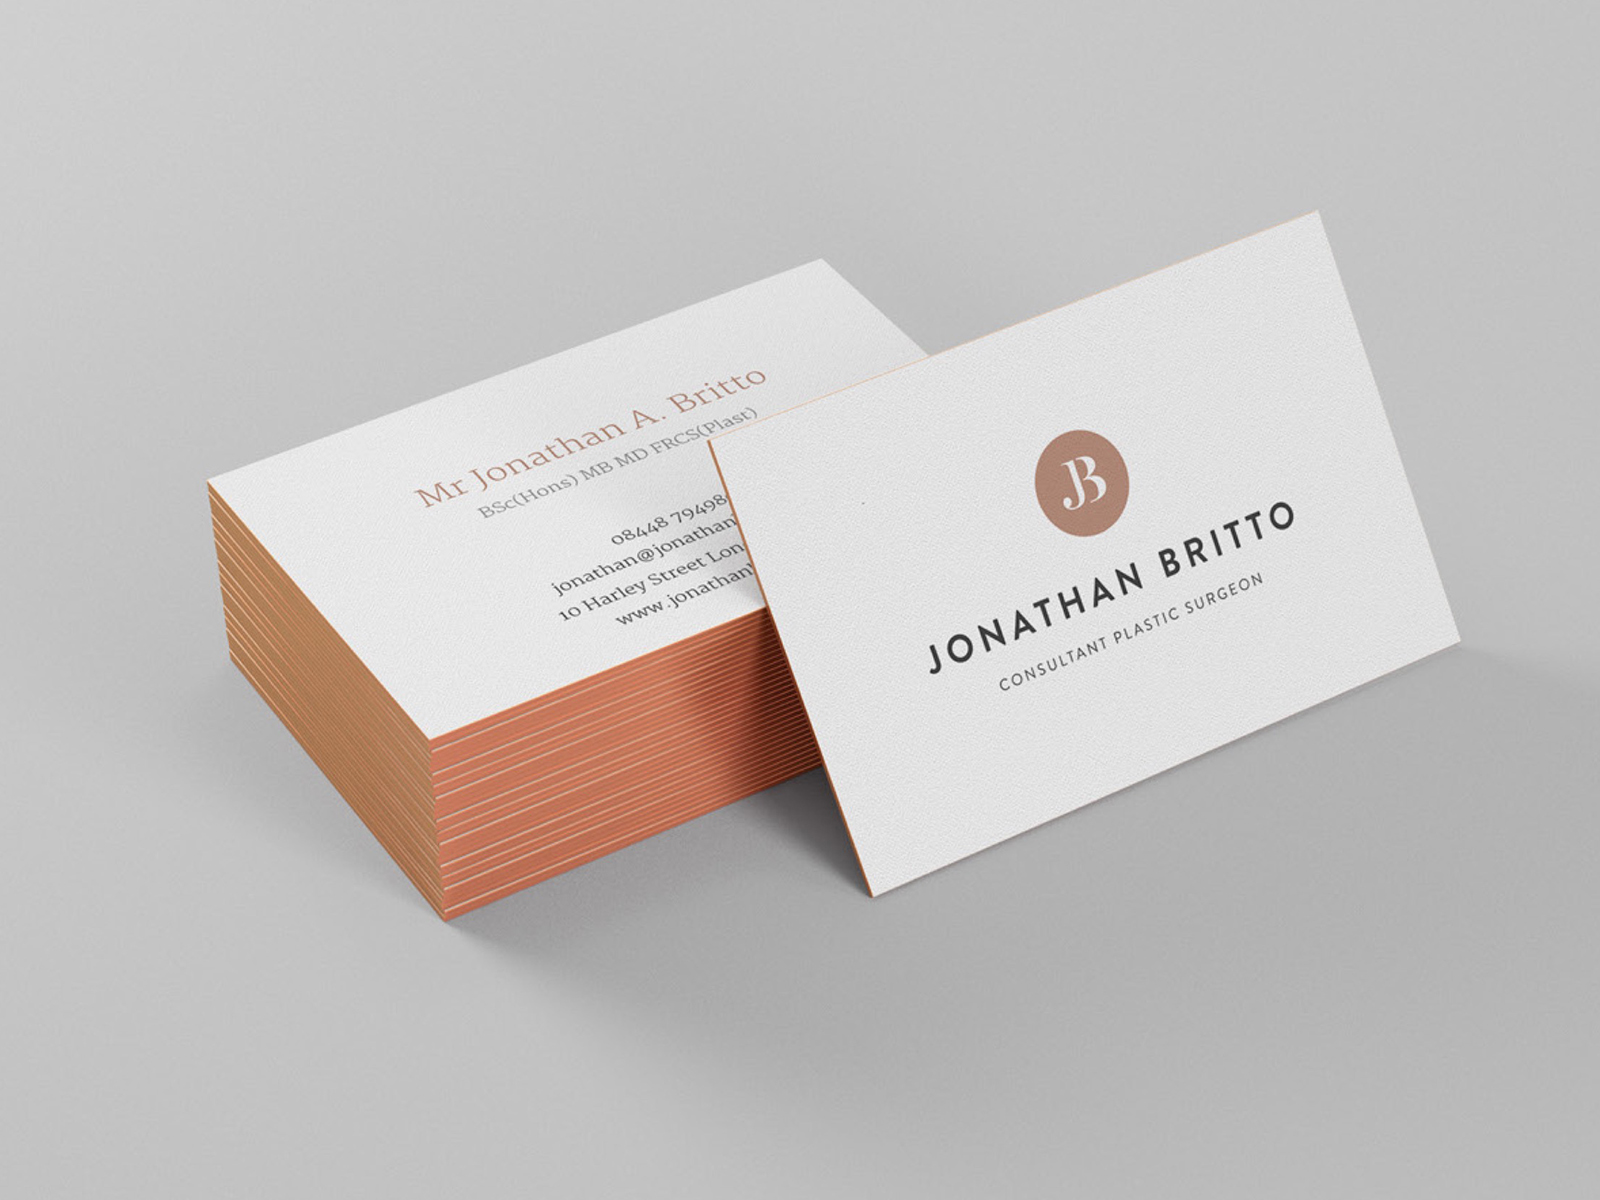 LeeHarding-JonathanBritto-businesscards